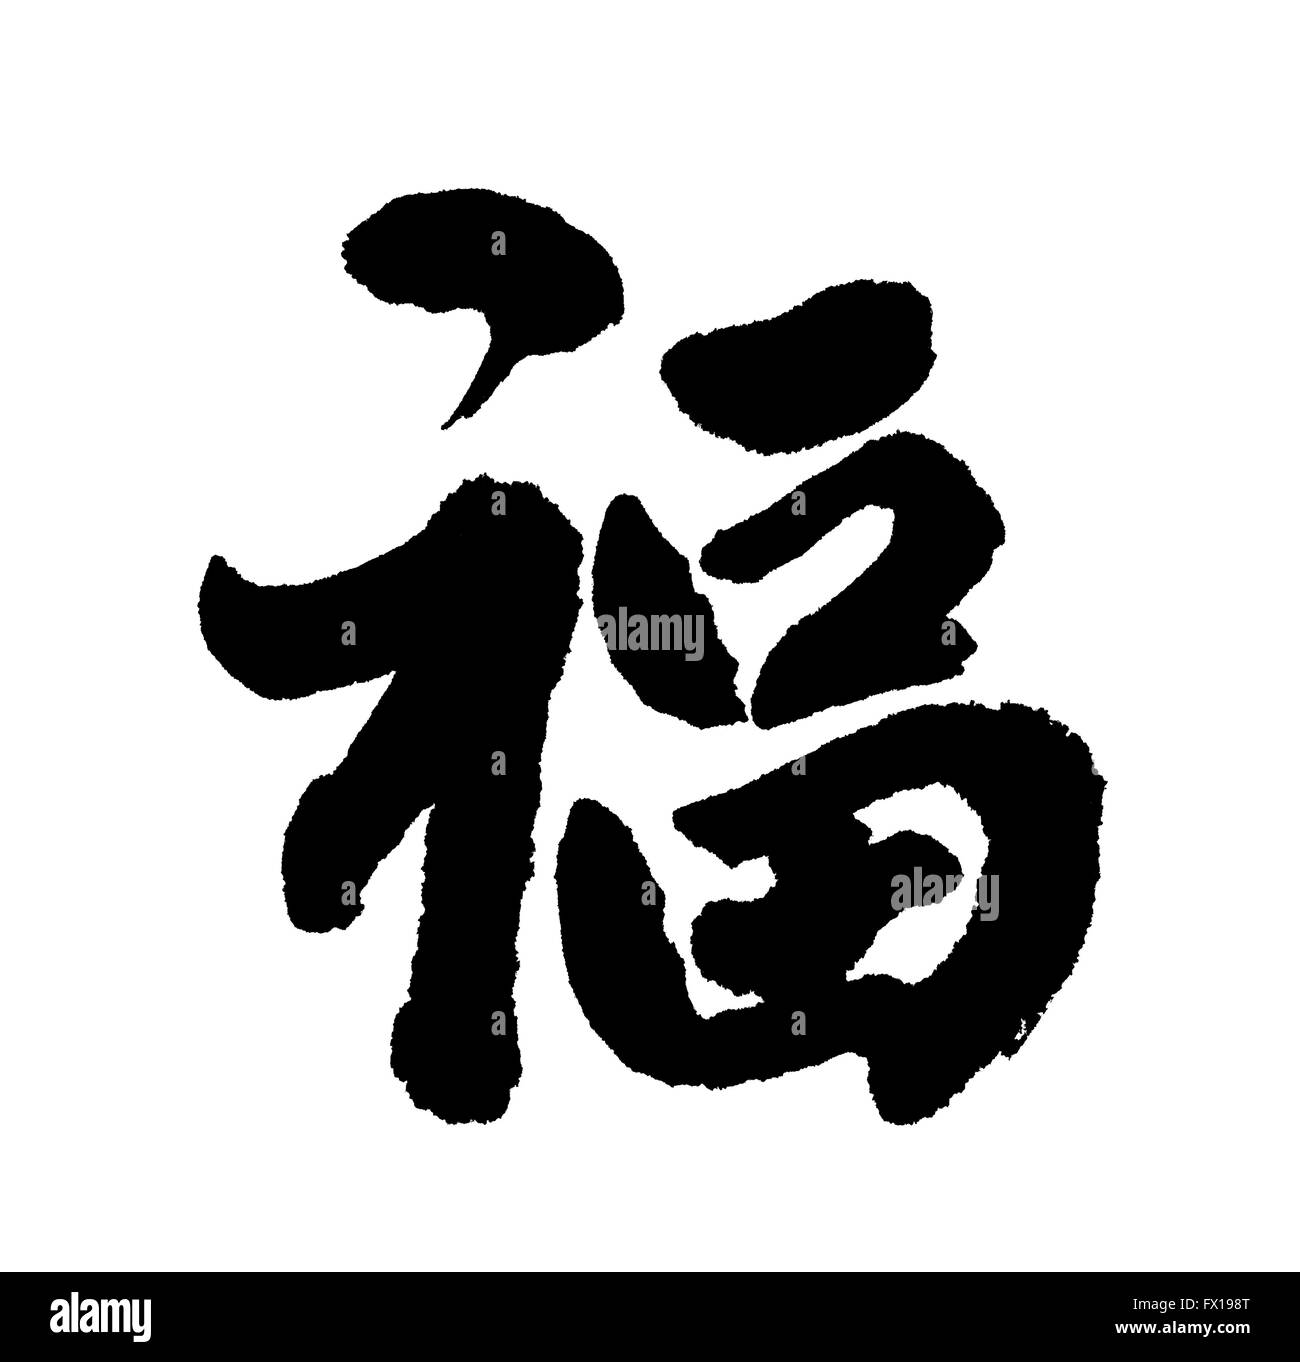 Chinese New Year Calligraphy for 'Fu', good fortune before will start chinese new year - Stock Image